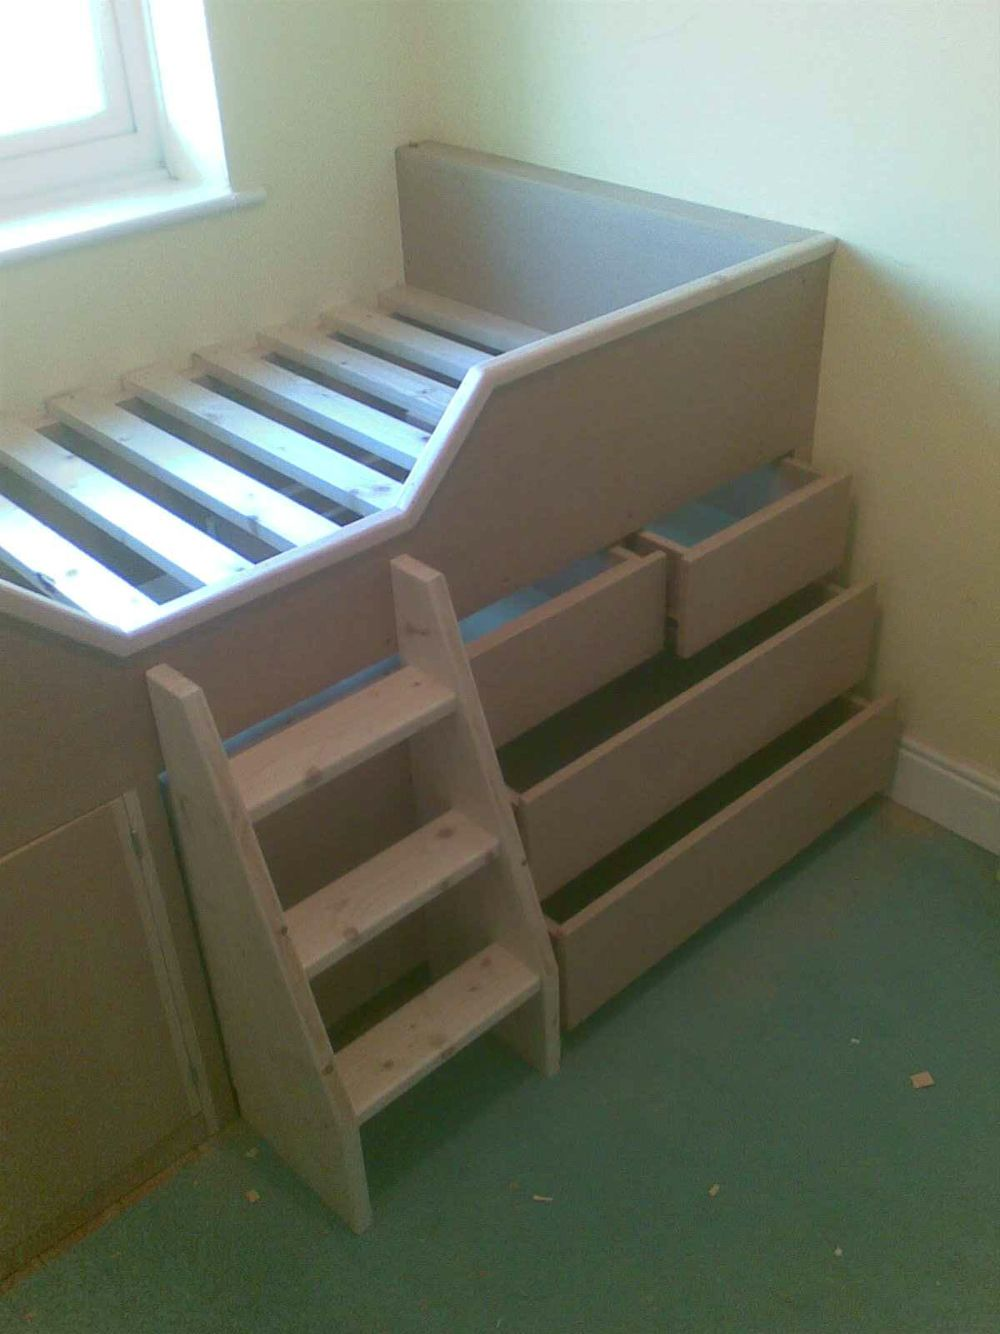 Pin by Carly Mills on Toddler cabin bed | Box room bedroom ...